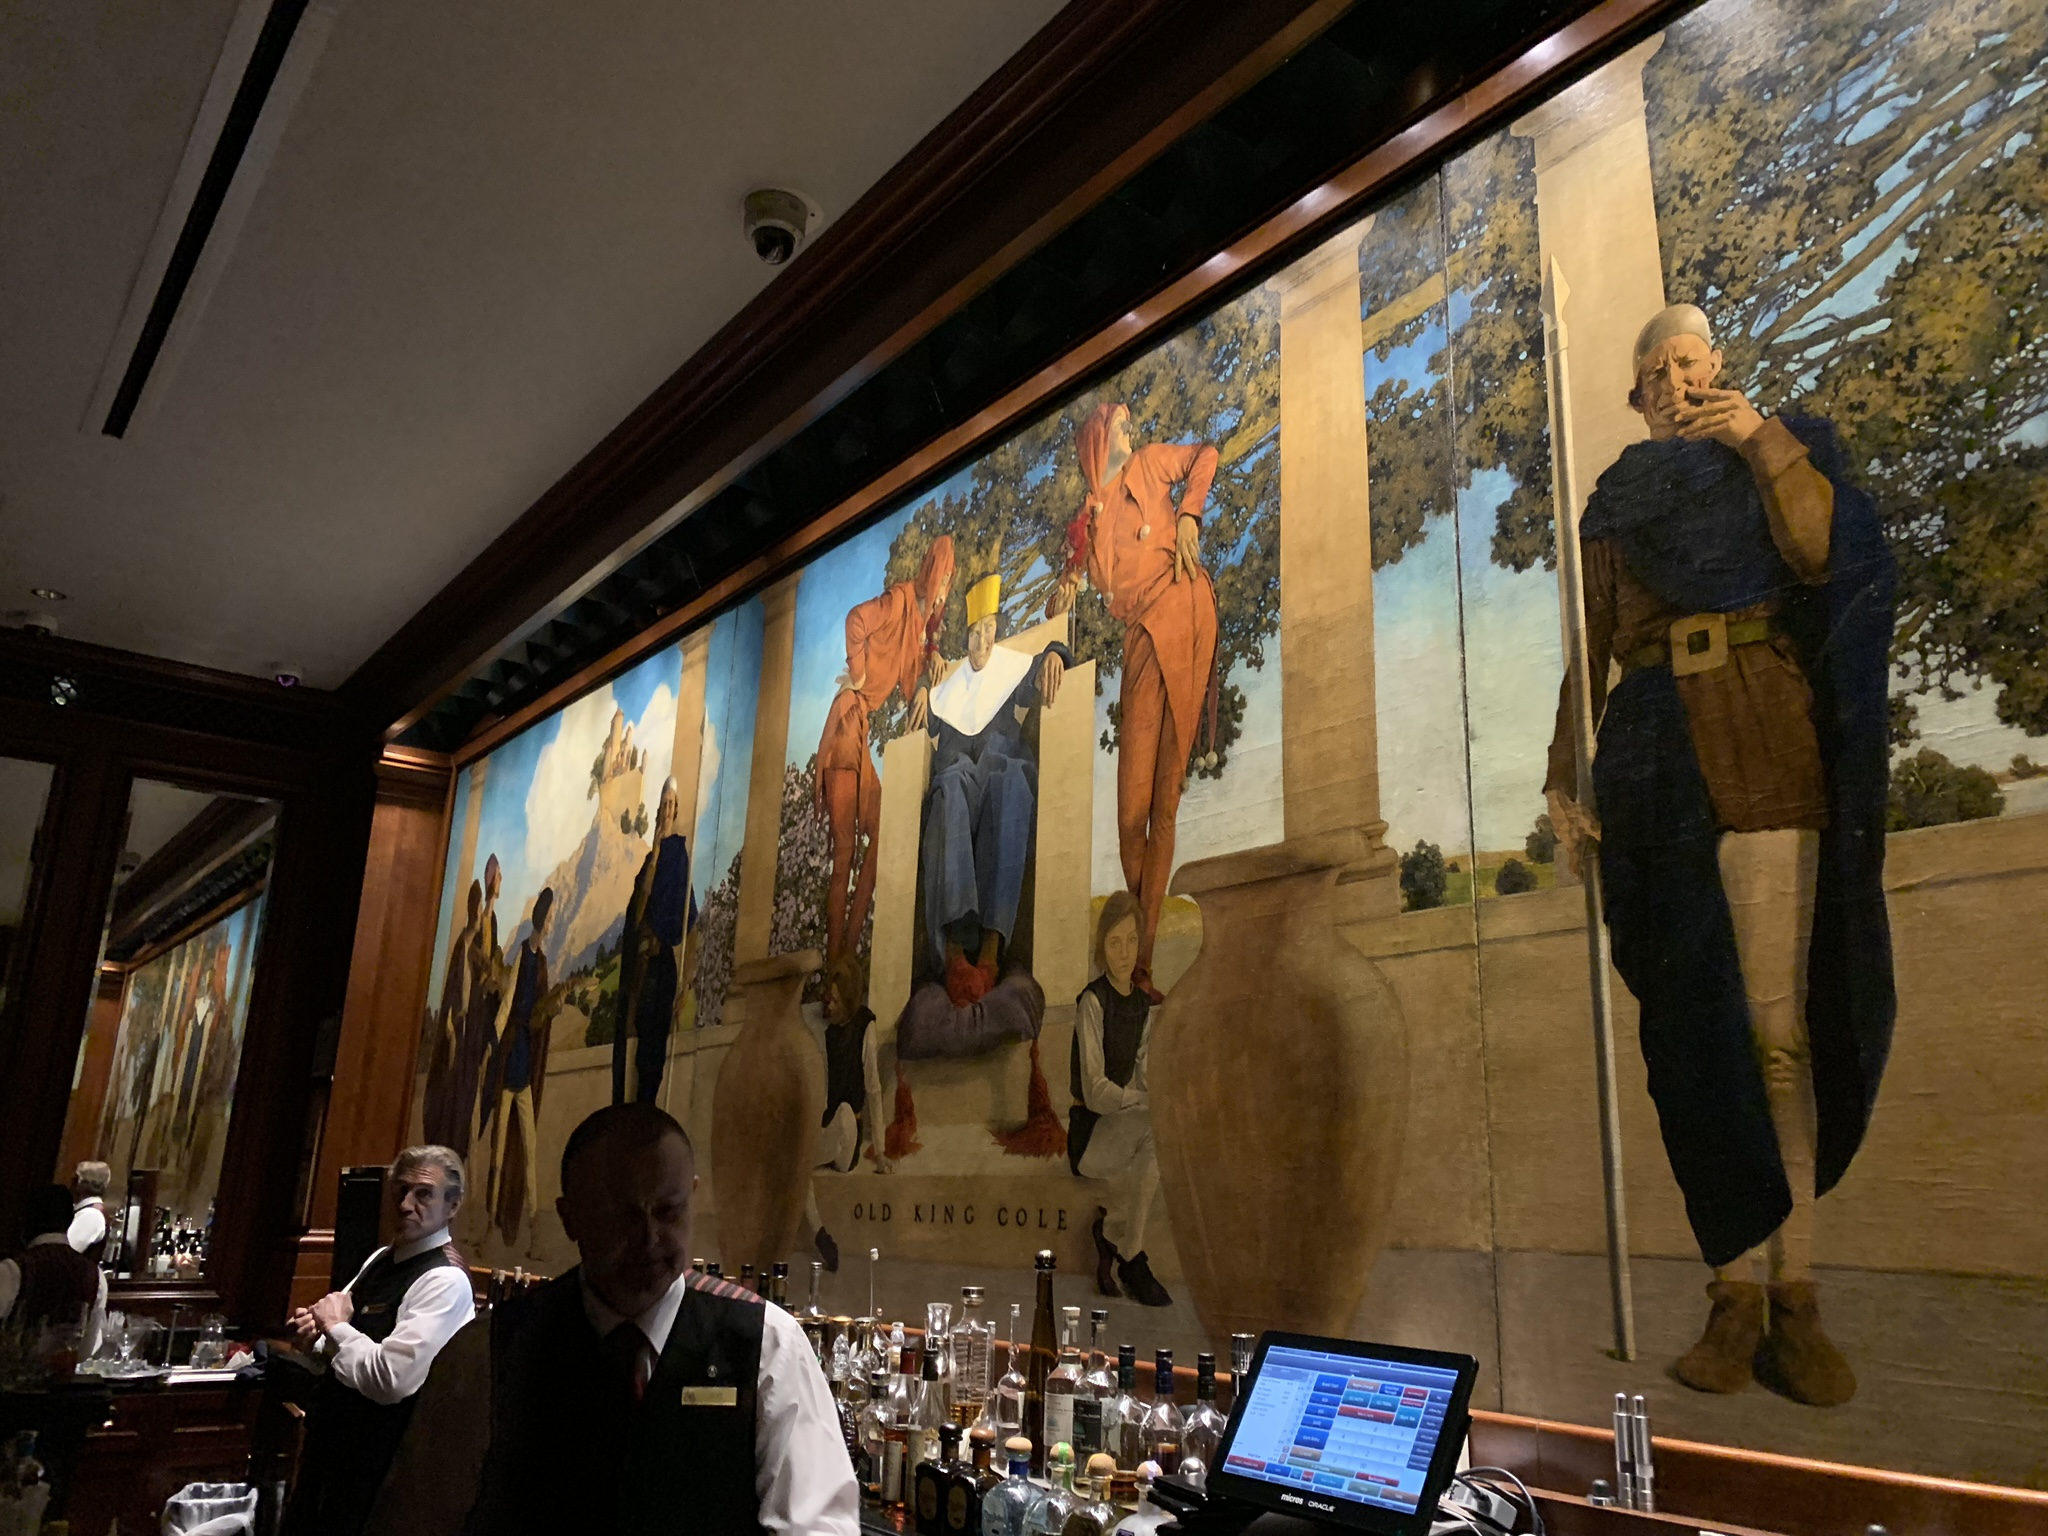 Maxfield Parrish's famous mural of Old King Cole in the bar at the Saint Regis. You can see the fiddlers three at far left. The pageboy with the pipe and the steward with the bowl are out of range on the right.